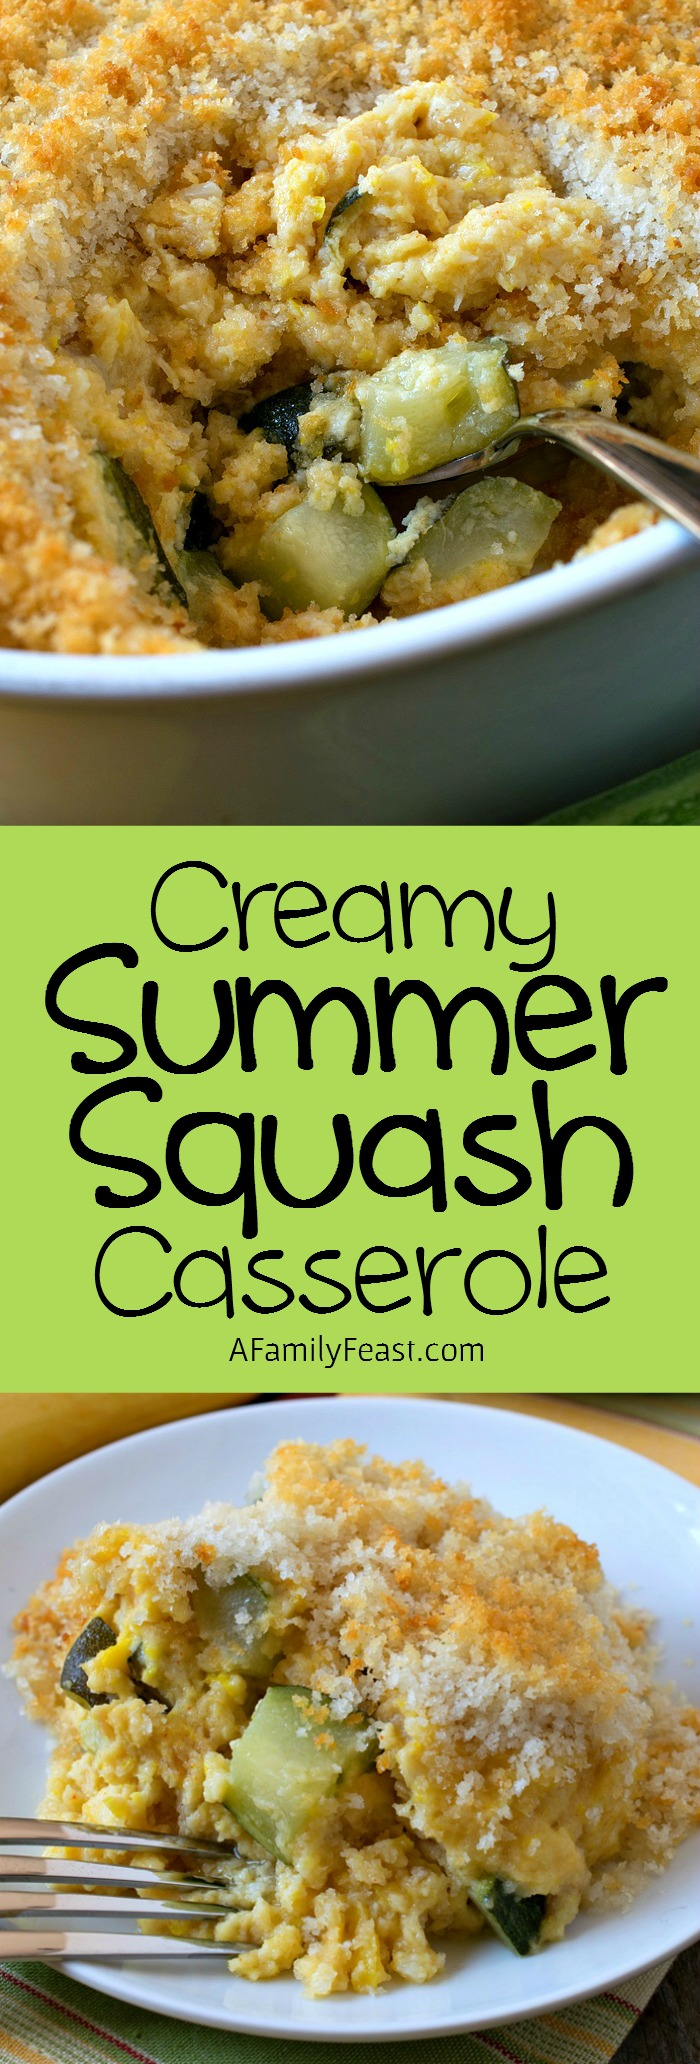 Creamy Summer Squash Casserole - This easy and delicious casserole is a great way to enjoy in-season summer squash and zucchini.